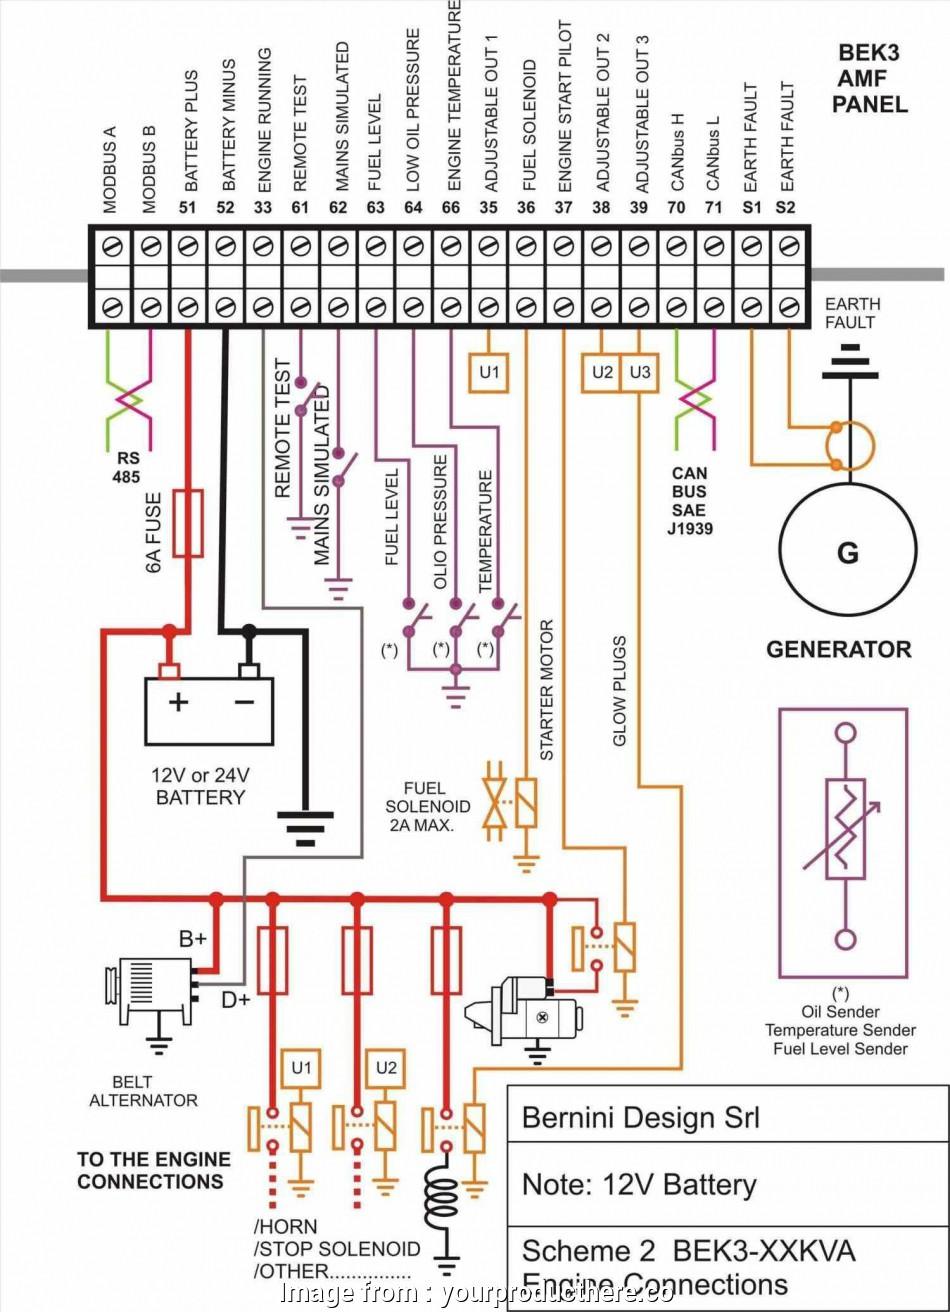 hight resolution of honeywell t5 thermostat wiring diagram honeywell lyric thermostat wiring diagram valid honeywell lyric t5 wiring diagram